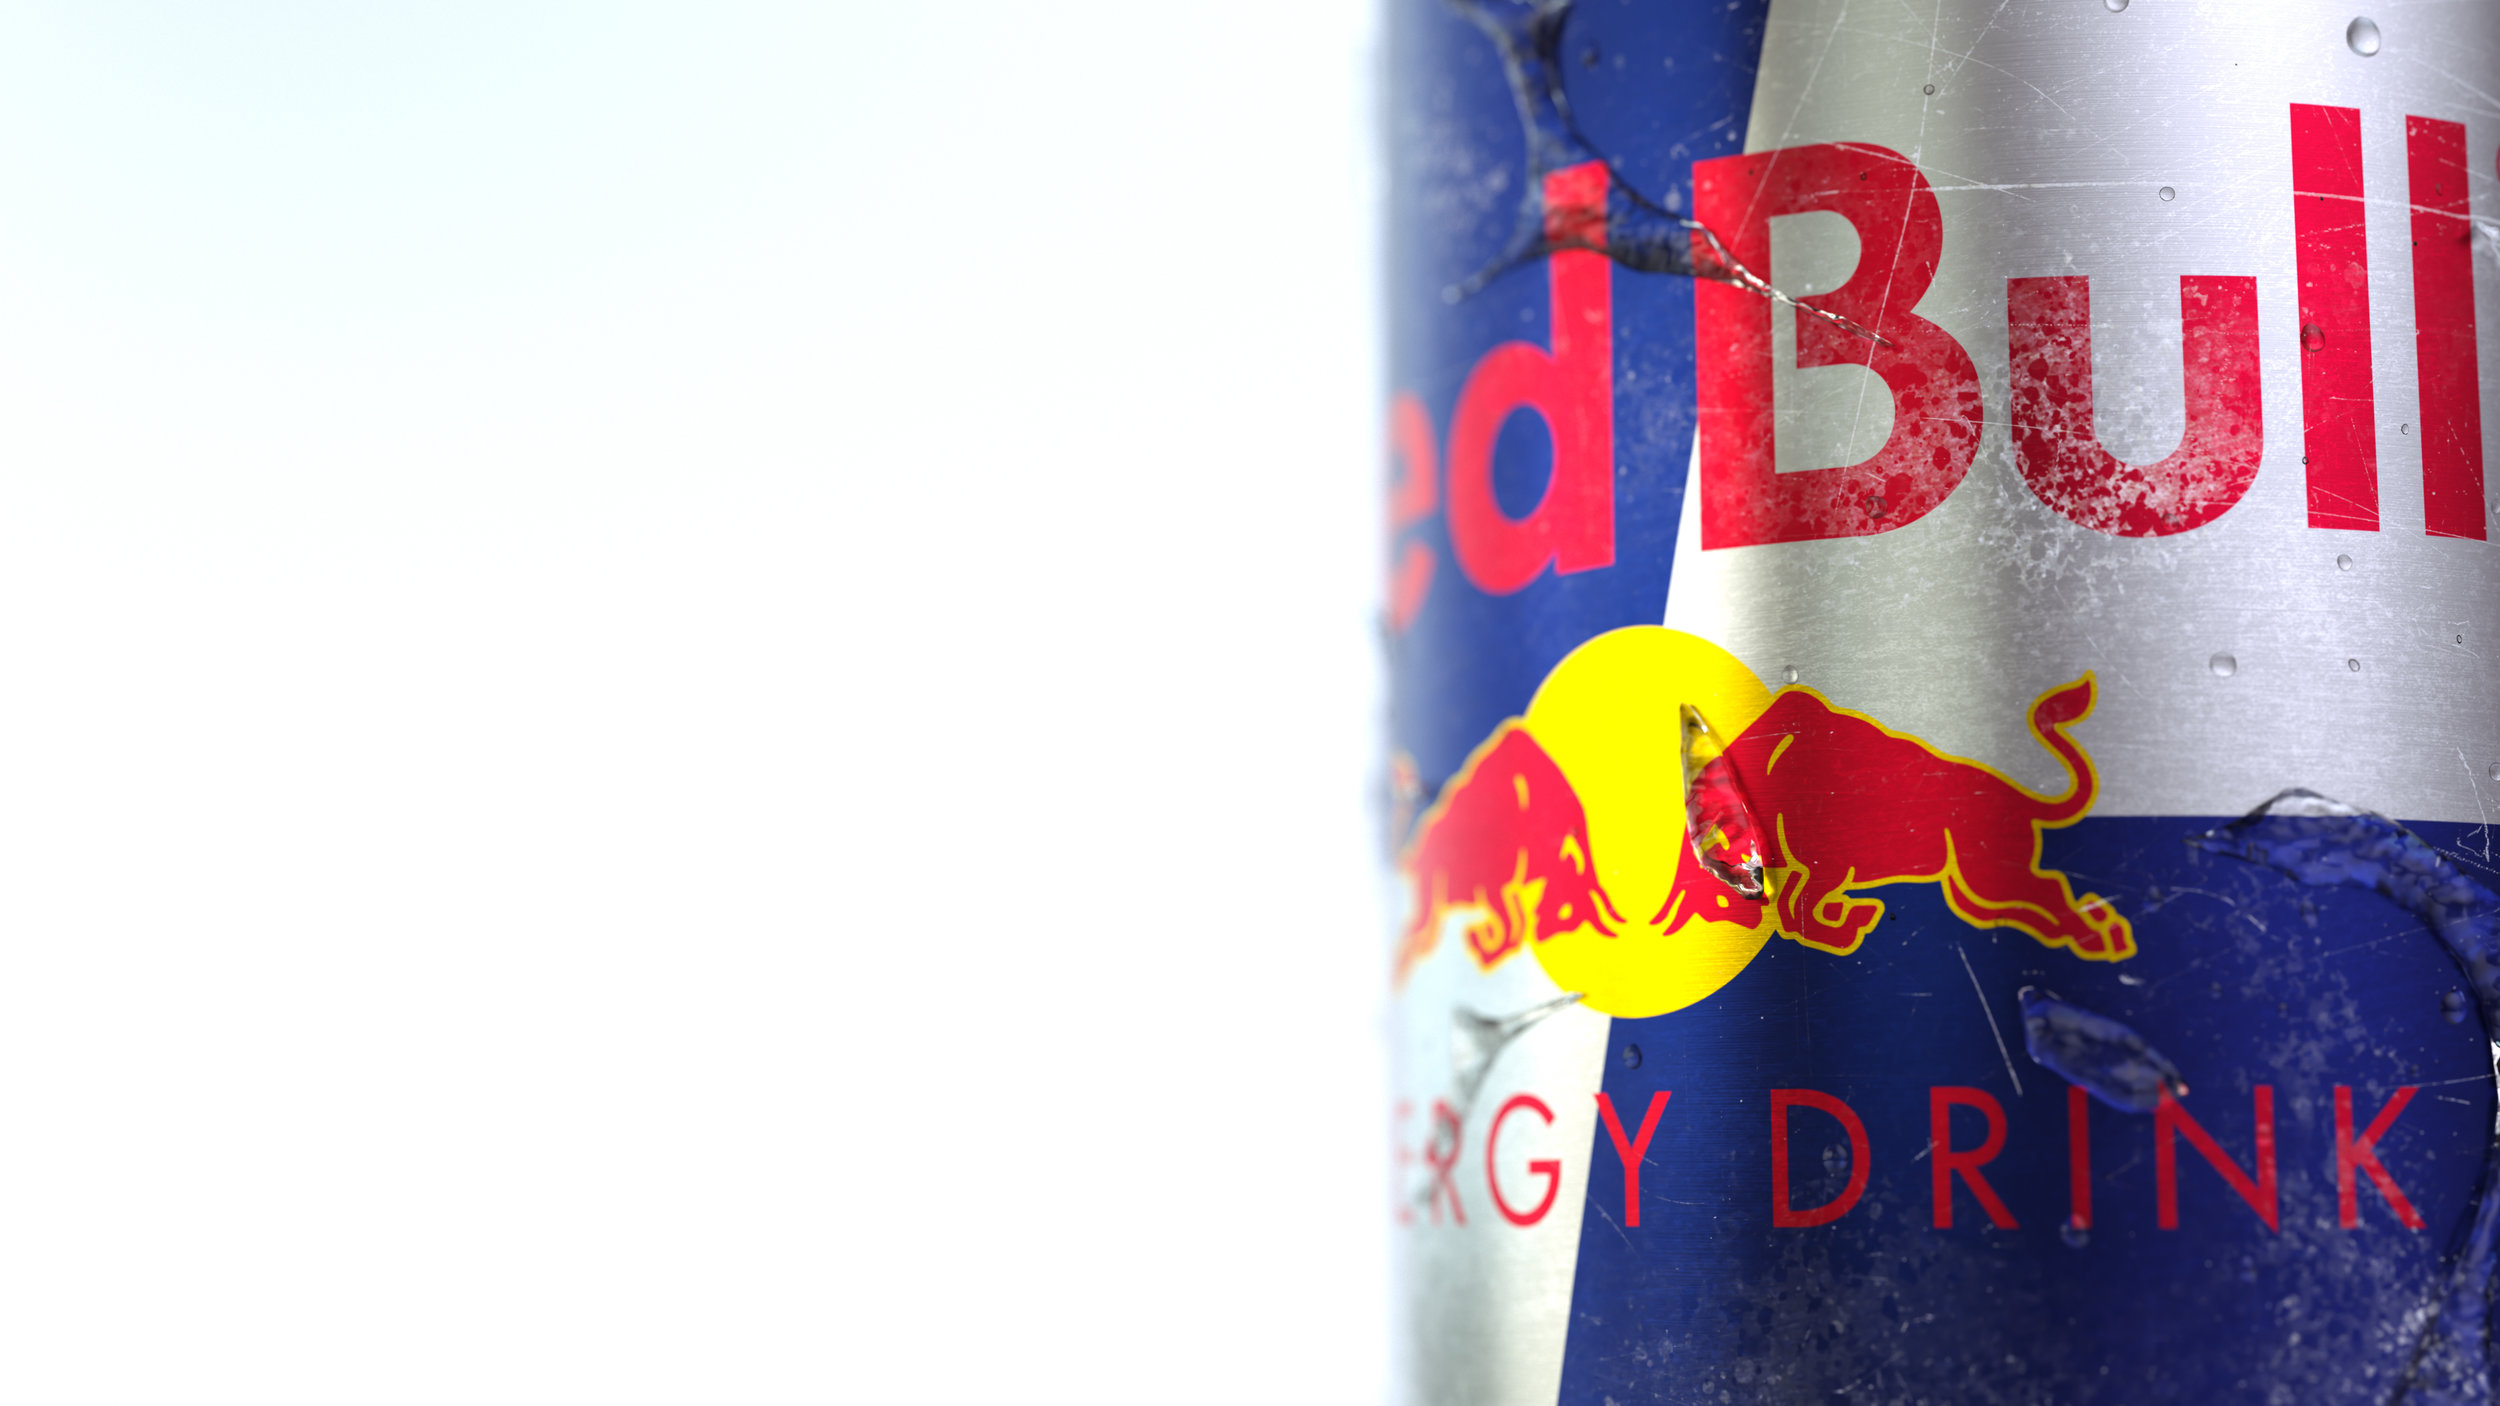 Red_Bull_250ml_Can_Octane_Stg01A_Cam_02_0004.jpg